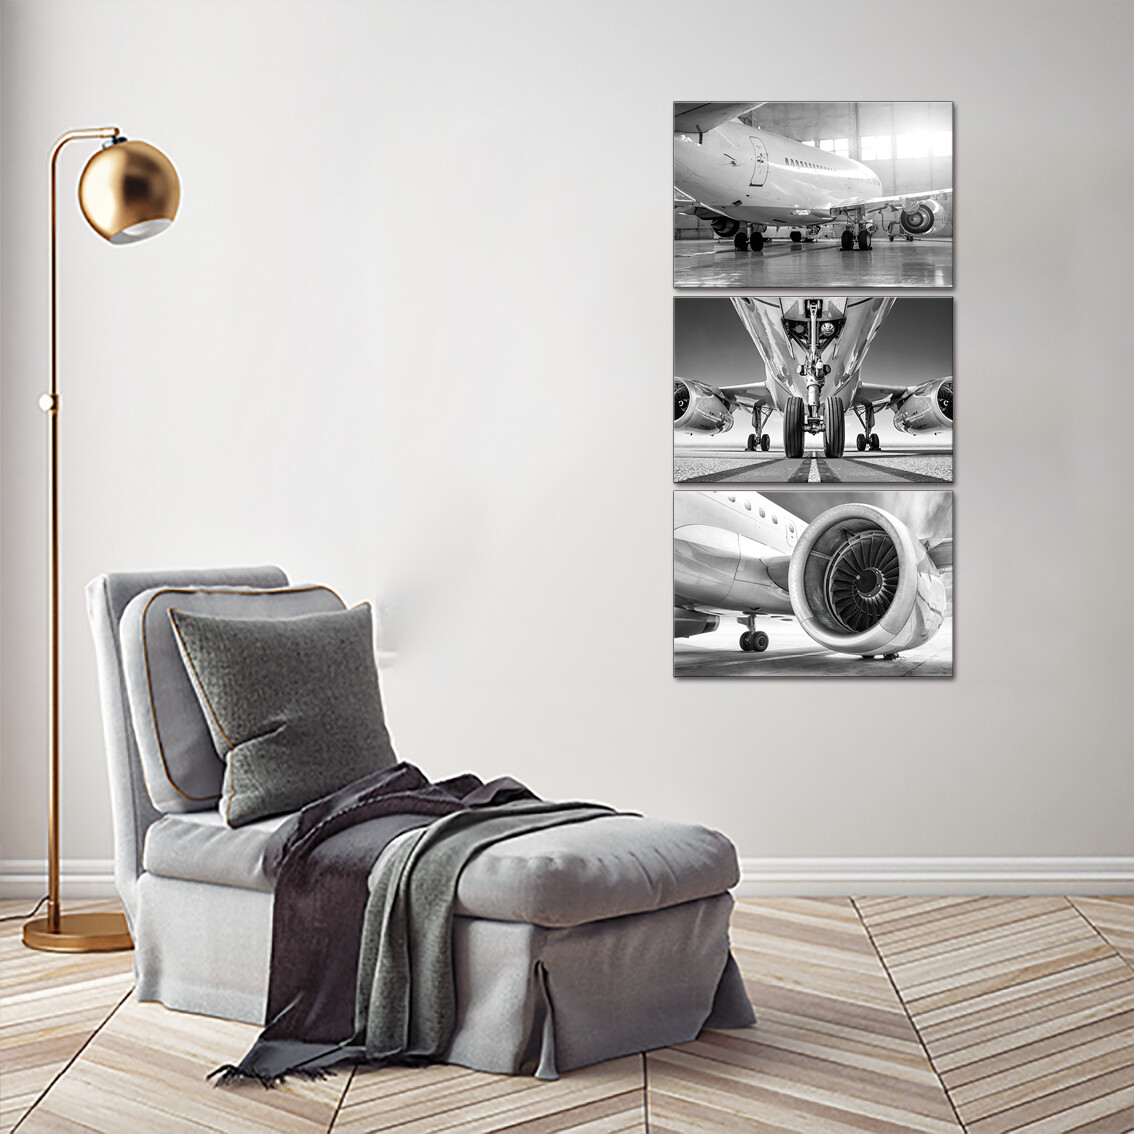 Aeroplane -Aircraft- Jet Engine Picture Printed On Acrylic Glass Panel - Modern Luxury Acrylic Glass Wall art - Frameless and Ready to Hang